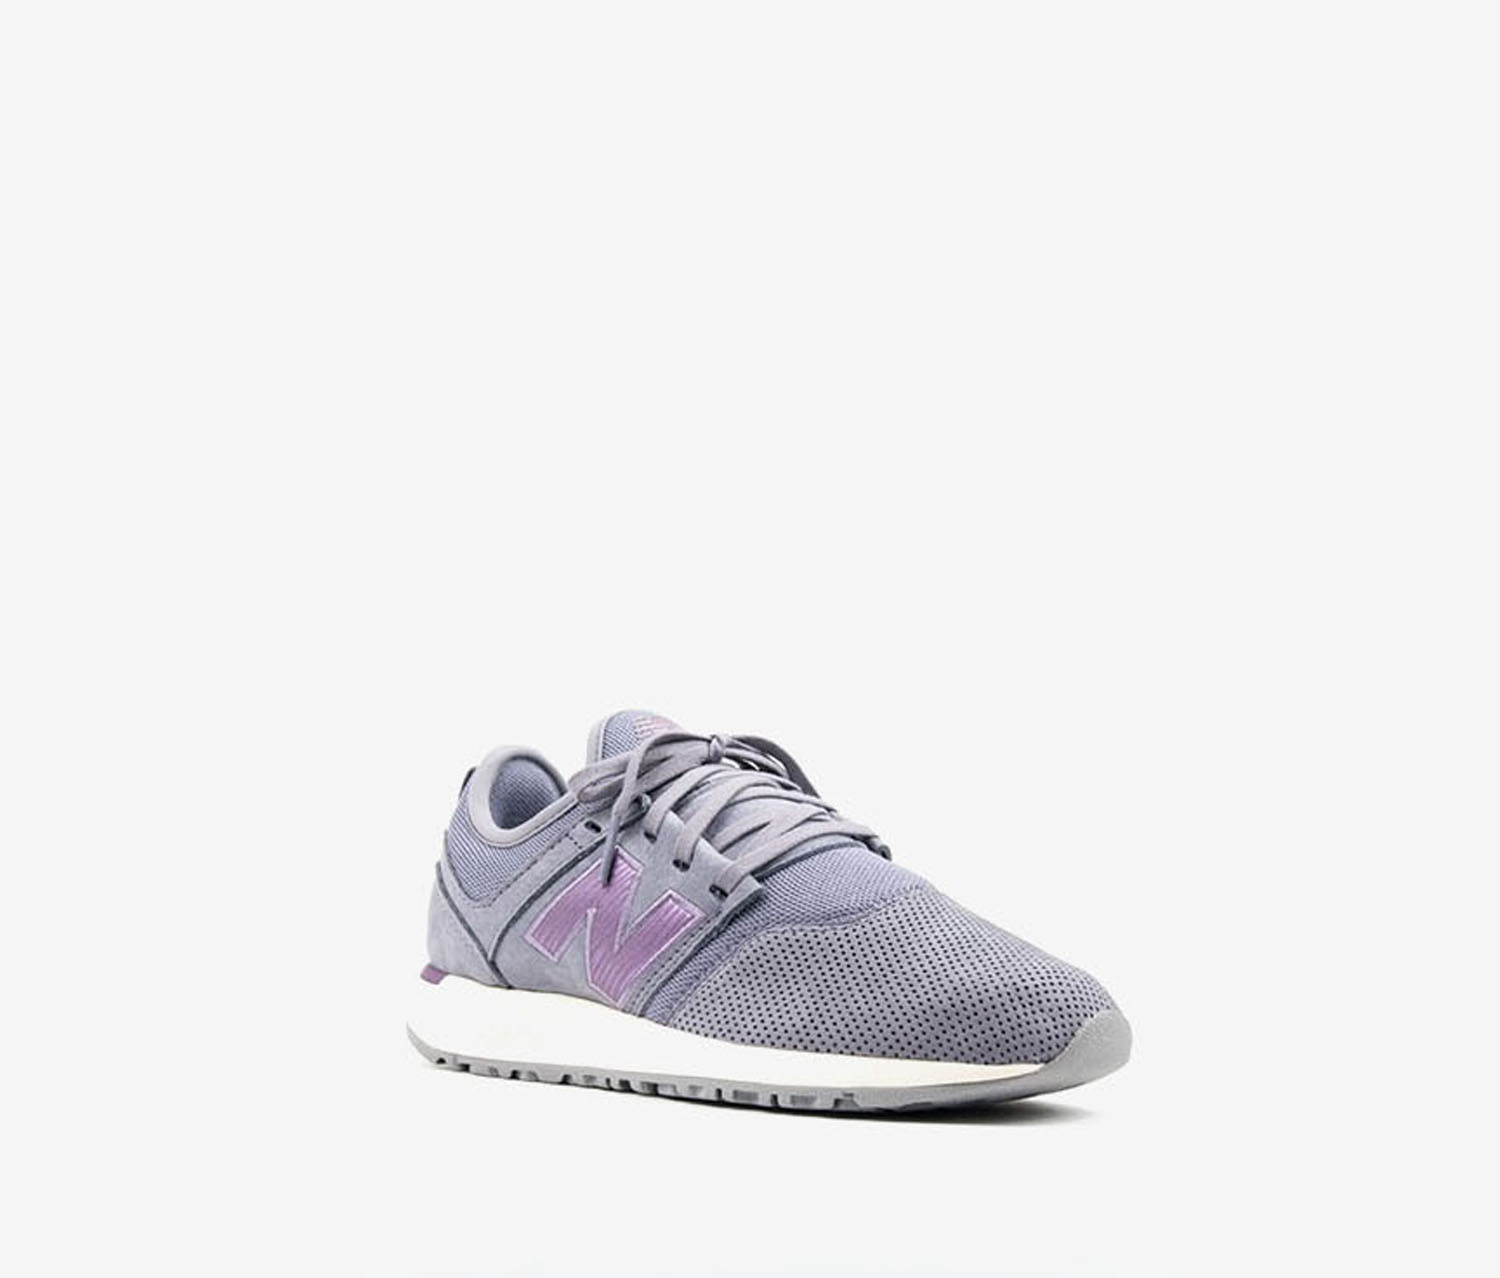 New Balance Women's Running Shoes, Light Purple